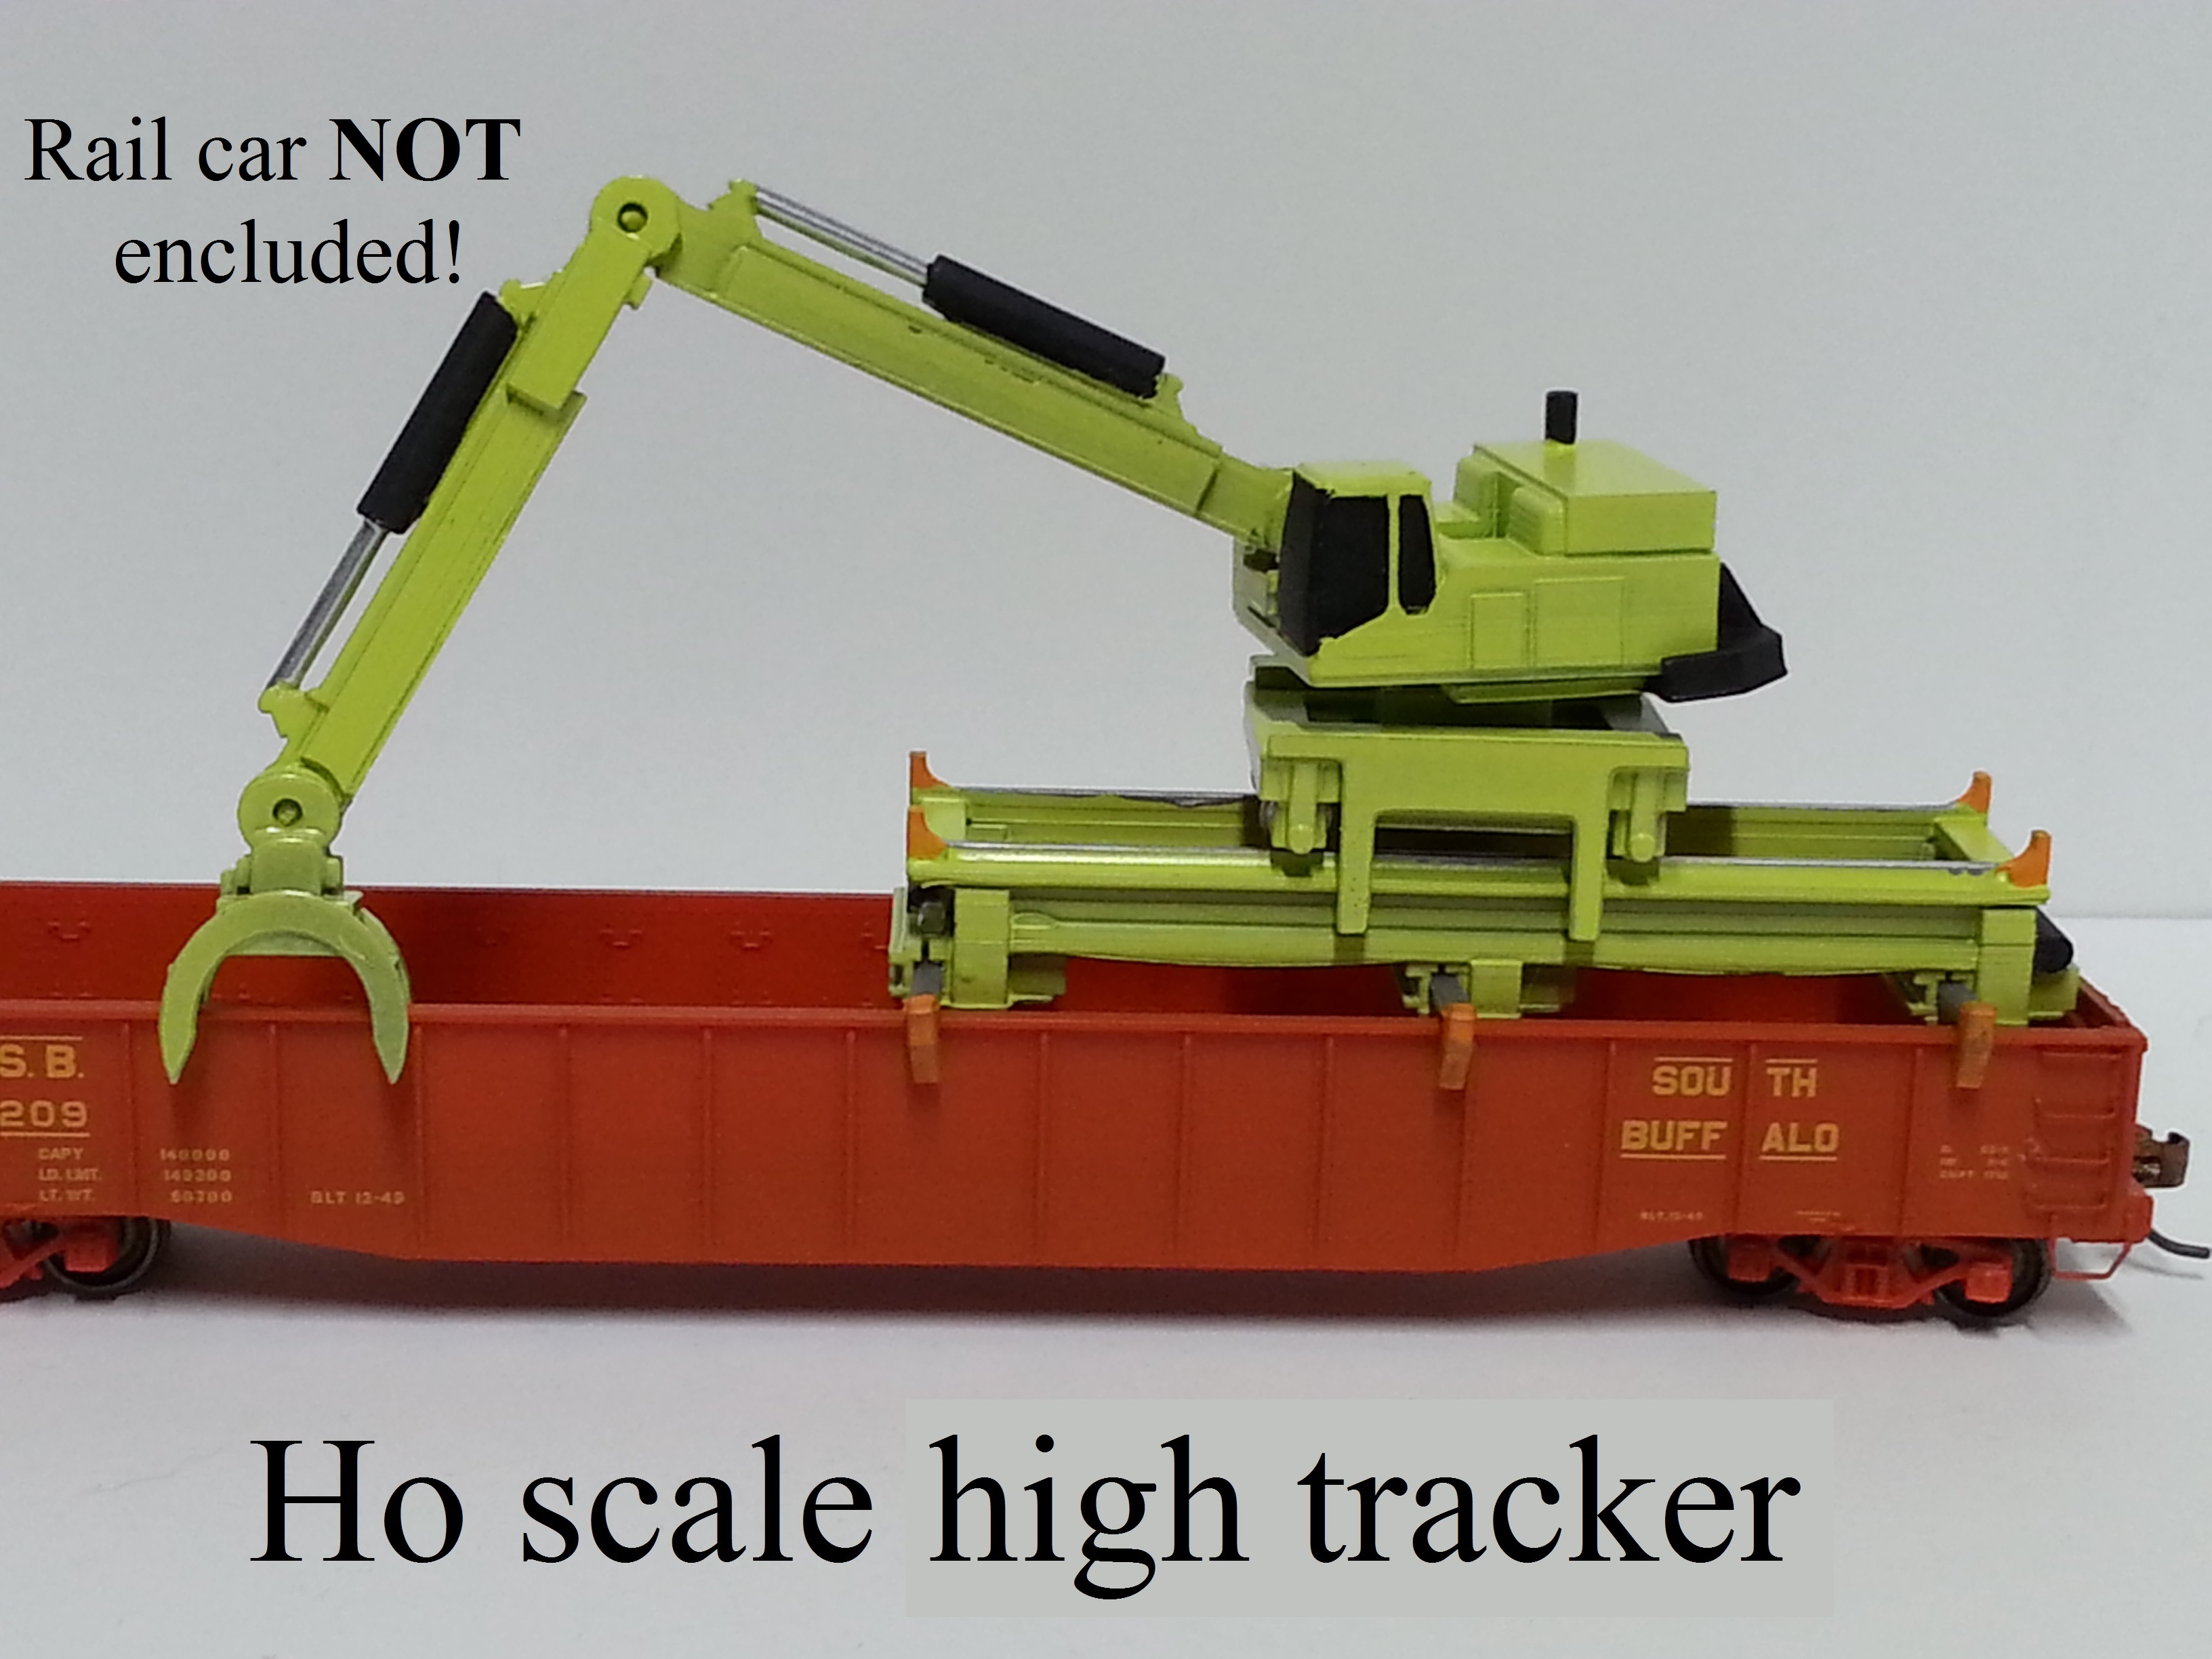 Ho scale high tracker